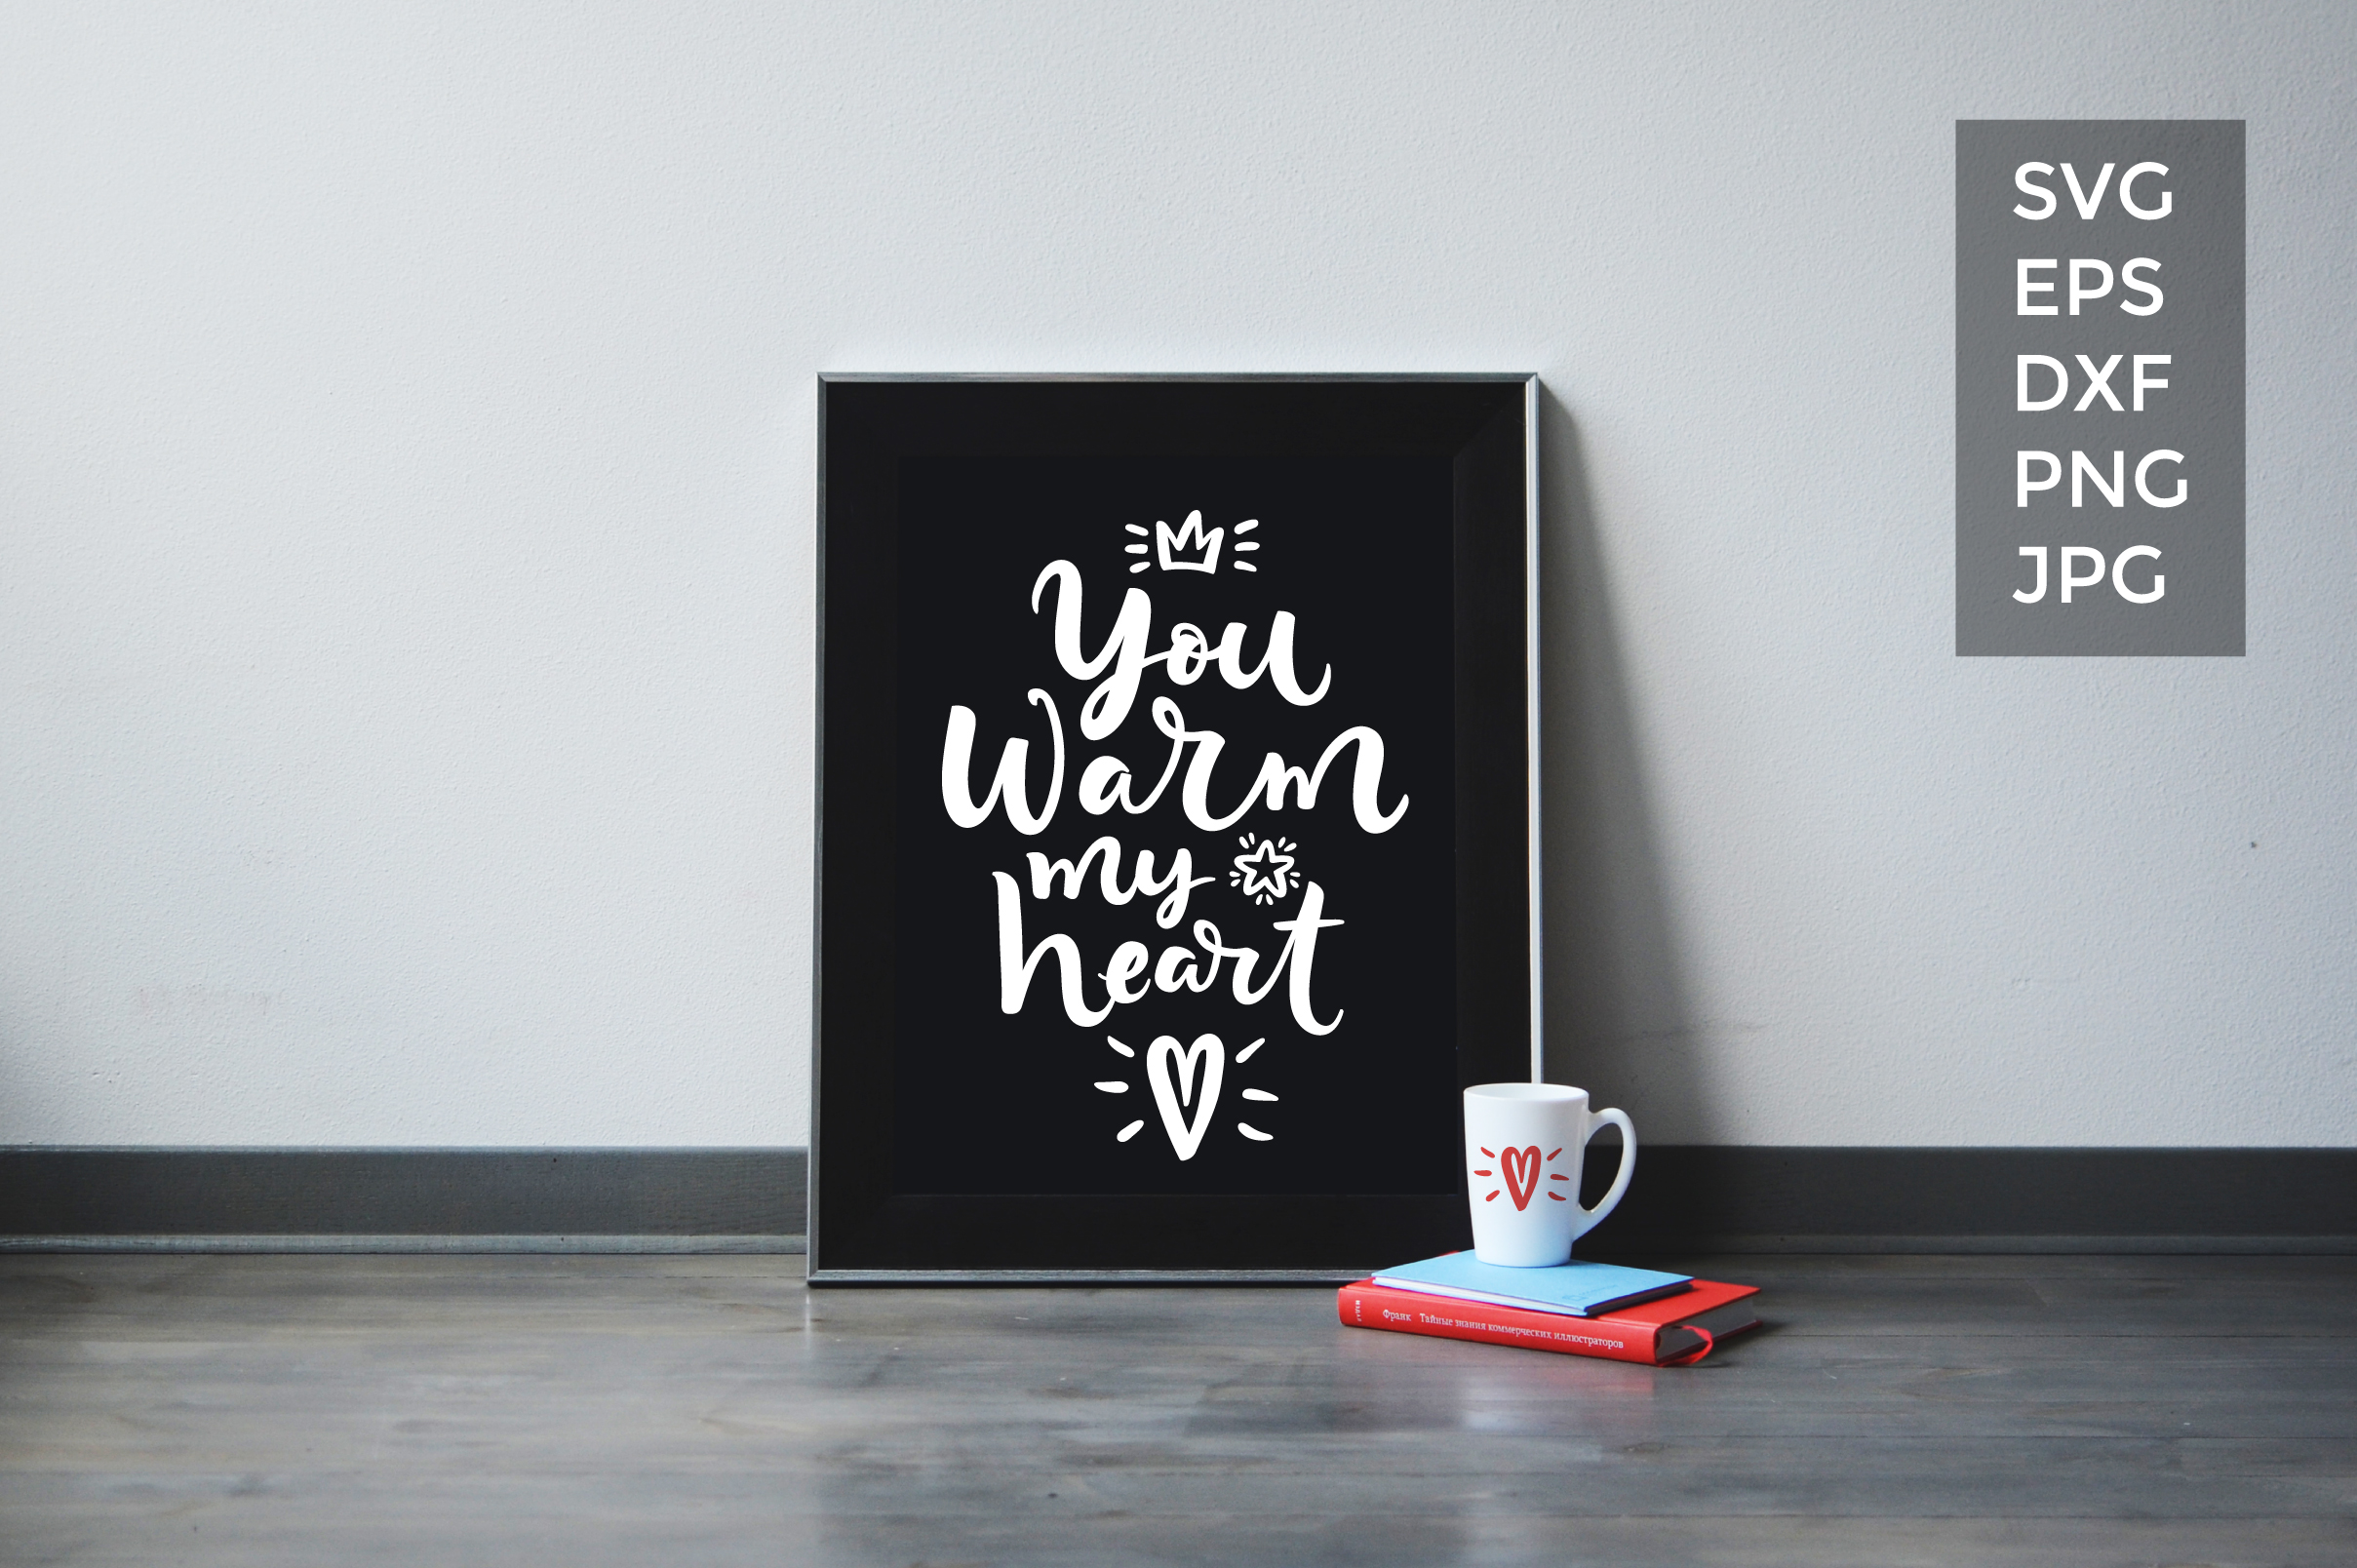 You warm my heart SVG cut file example image 3